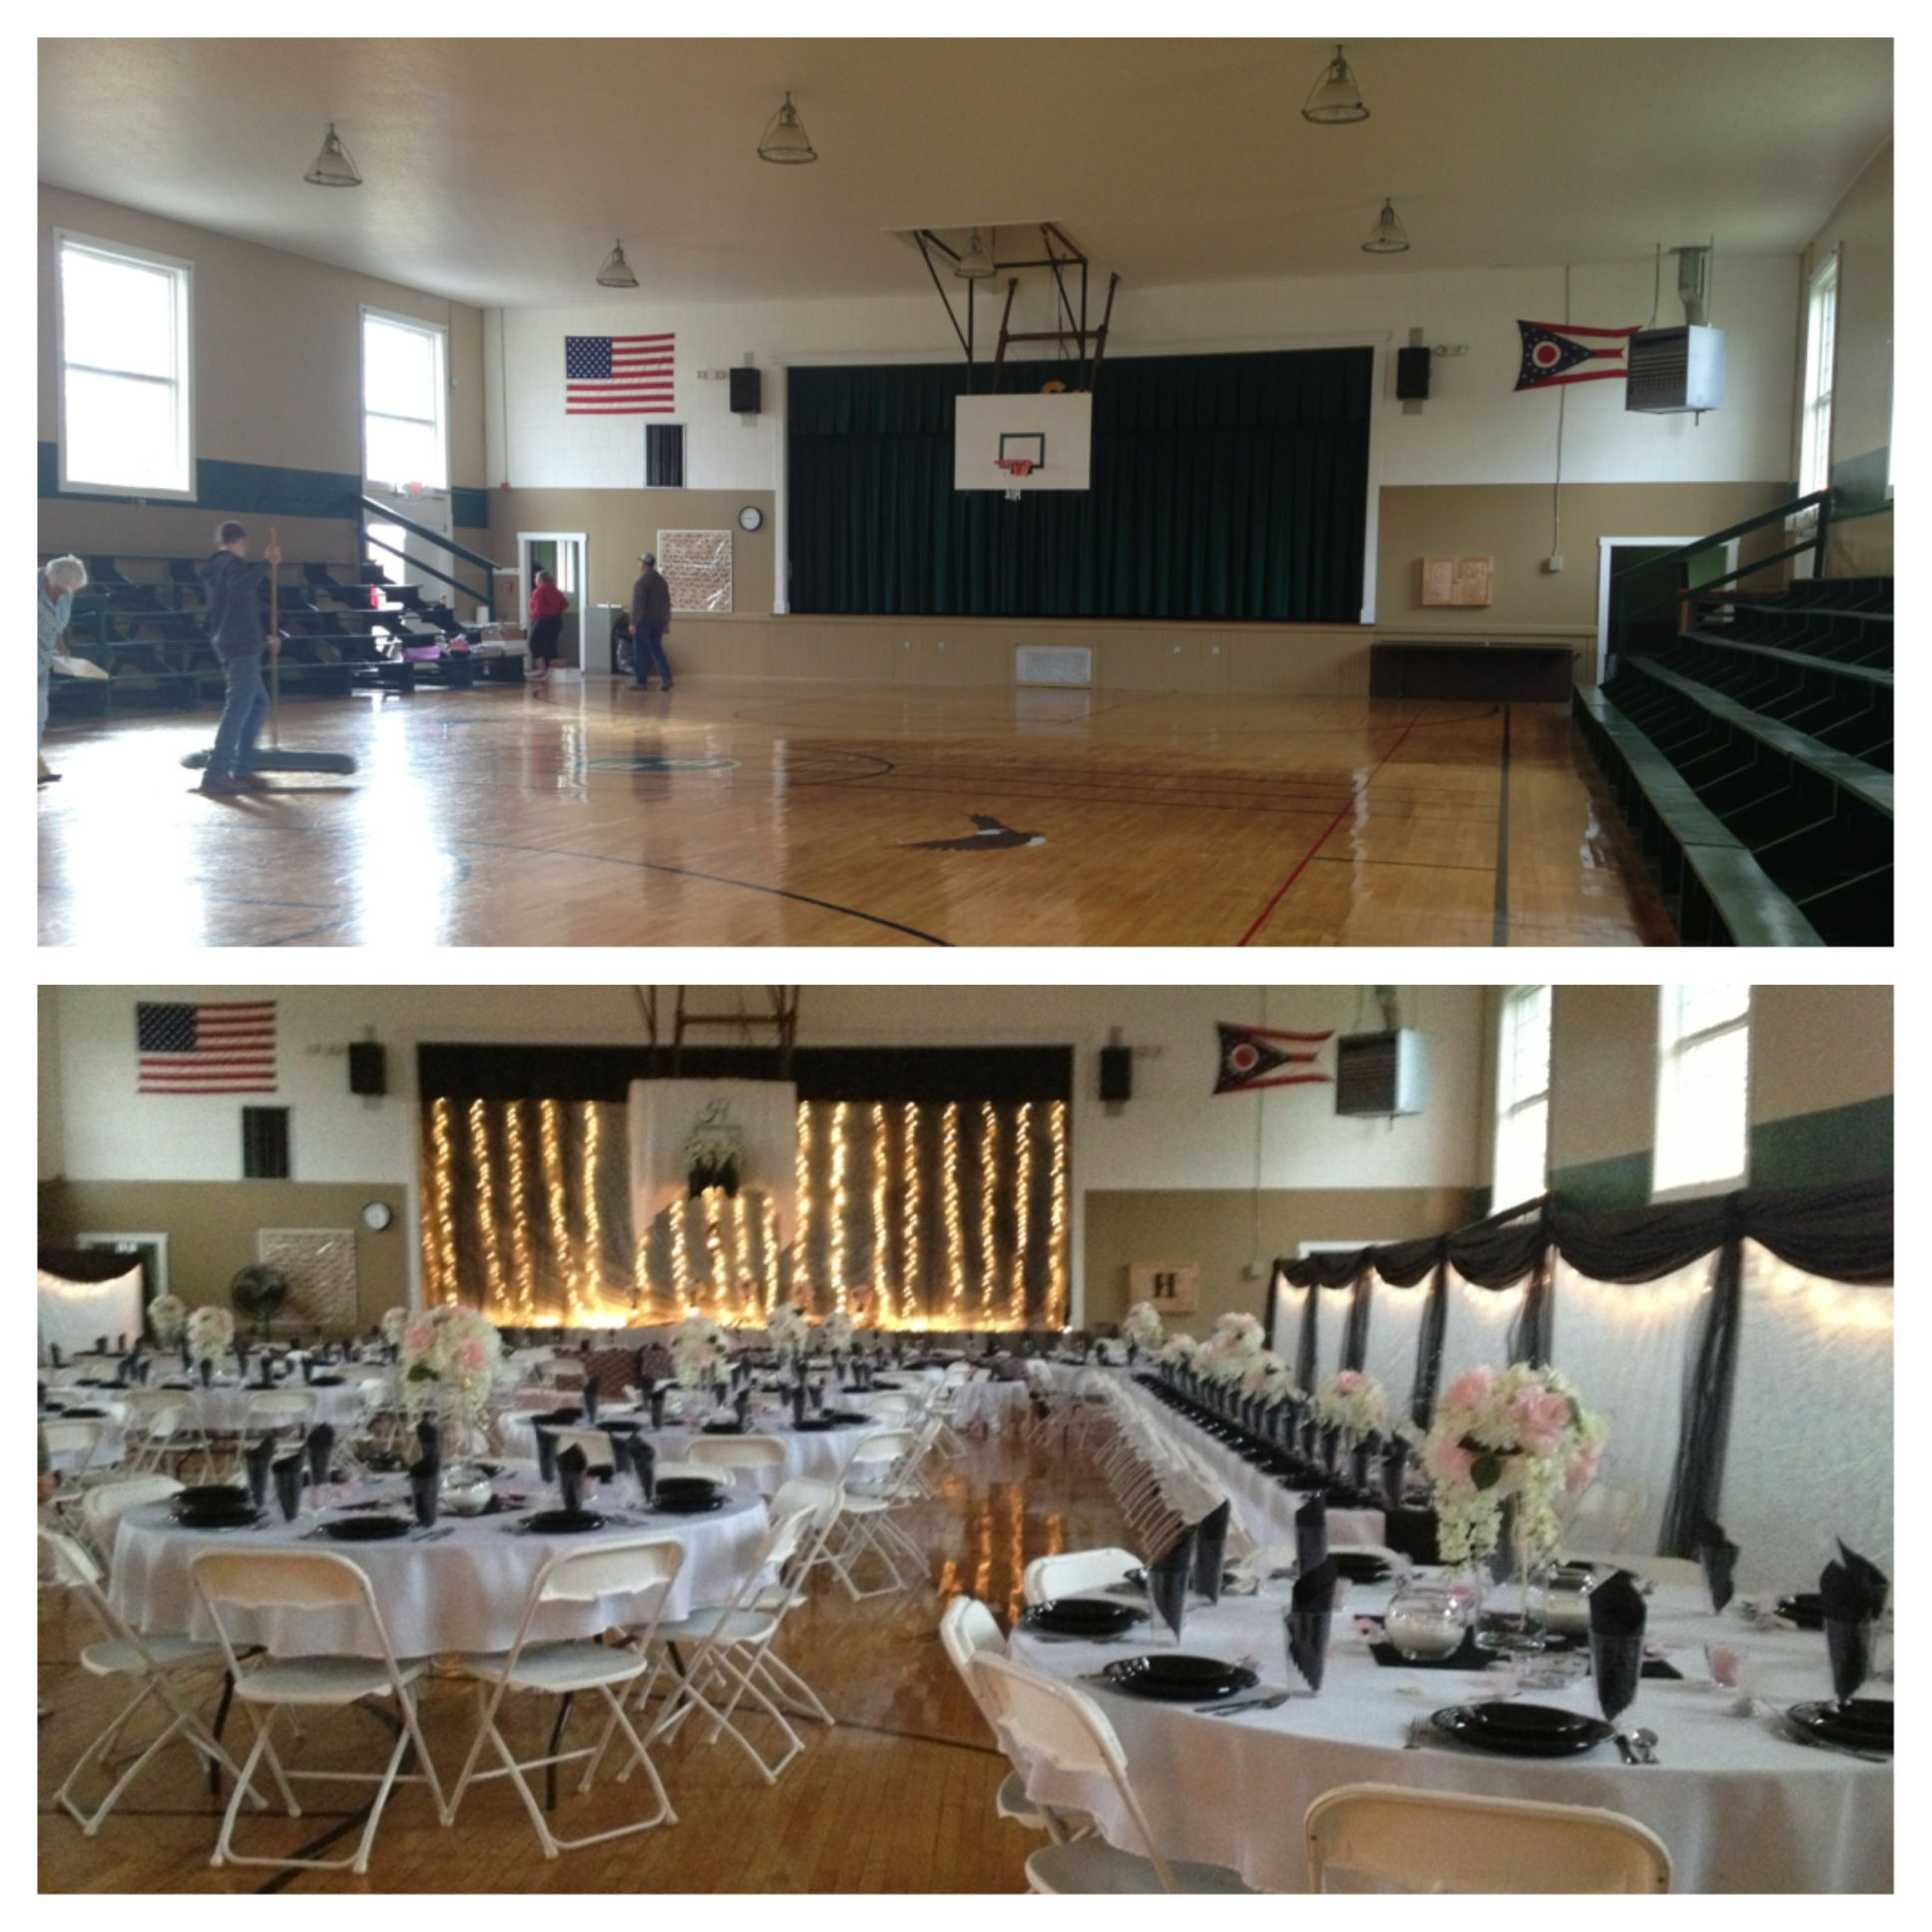 Wedding Ideas With A Difference: The Gymnasium Decorated For The Reception And And A